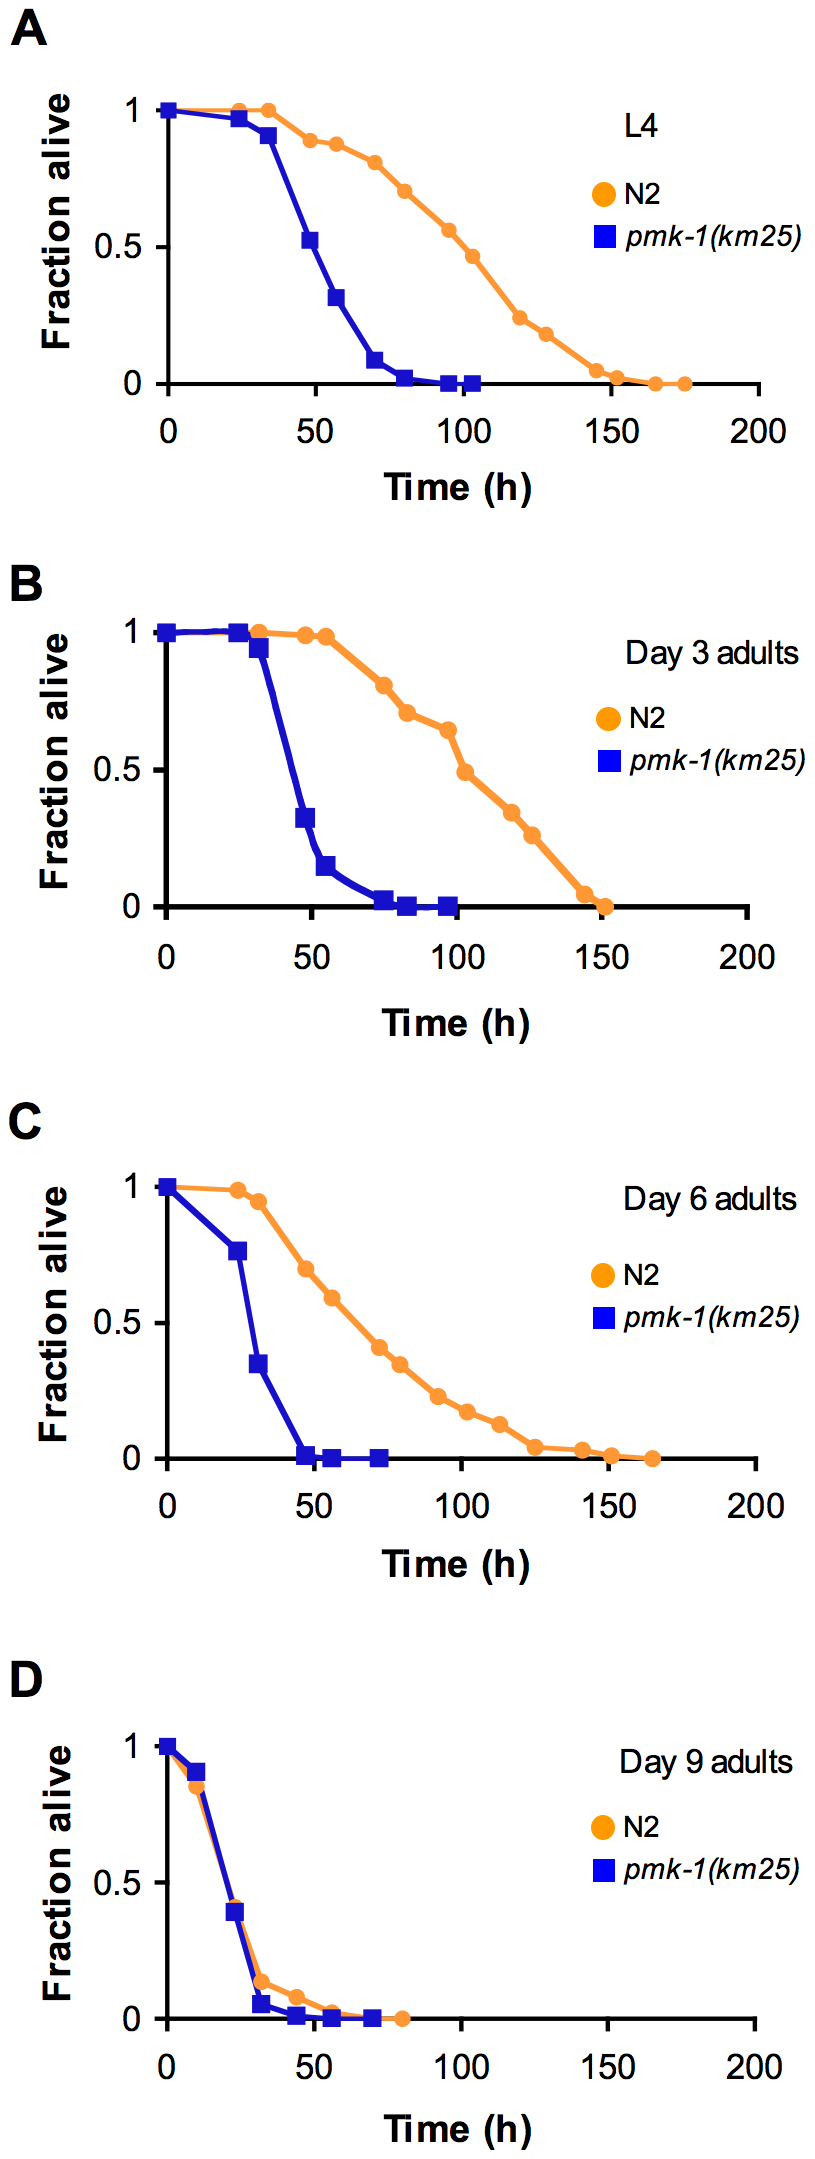 Age-dependent decrease in the contribution of PMK-1 p38 MAPK signaling to <i>C. elegans</i> immunity.